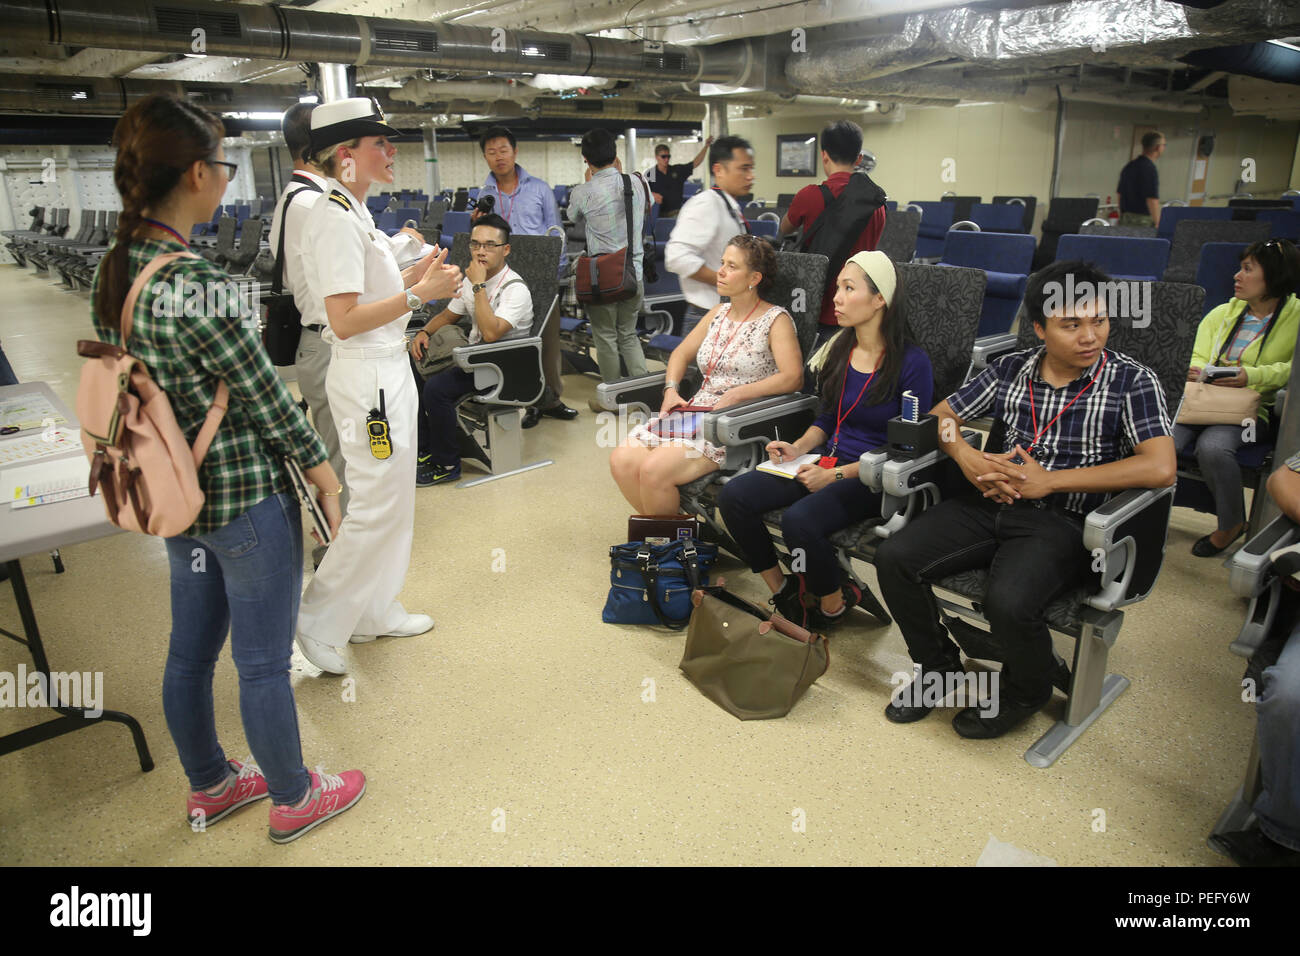 150817-M-GO800-258 DA NANG, Vietnam (Aug. 17, 2015) – Lt. Chelsea Irish explains to local Vietnamese news media the function of the 312 room aboard the Military Sealift Command joint high speed vessel USNS Millinocket (JHSV 3) during a ship tour Aug. 17. Task Force Forager, embarked aboard the Millinocket  is serving as the secondary platform for Pacific Partnership, led by an expeditionary command element from the Navy's 30th Naval Construction Regiment (30 NCR) from Port Hueneme, Calif. Now in its 10th iteration, Pacific Partnership is the largest annual multilateral humanitarian assistance  - Stock Image